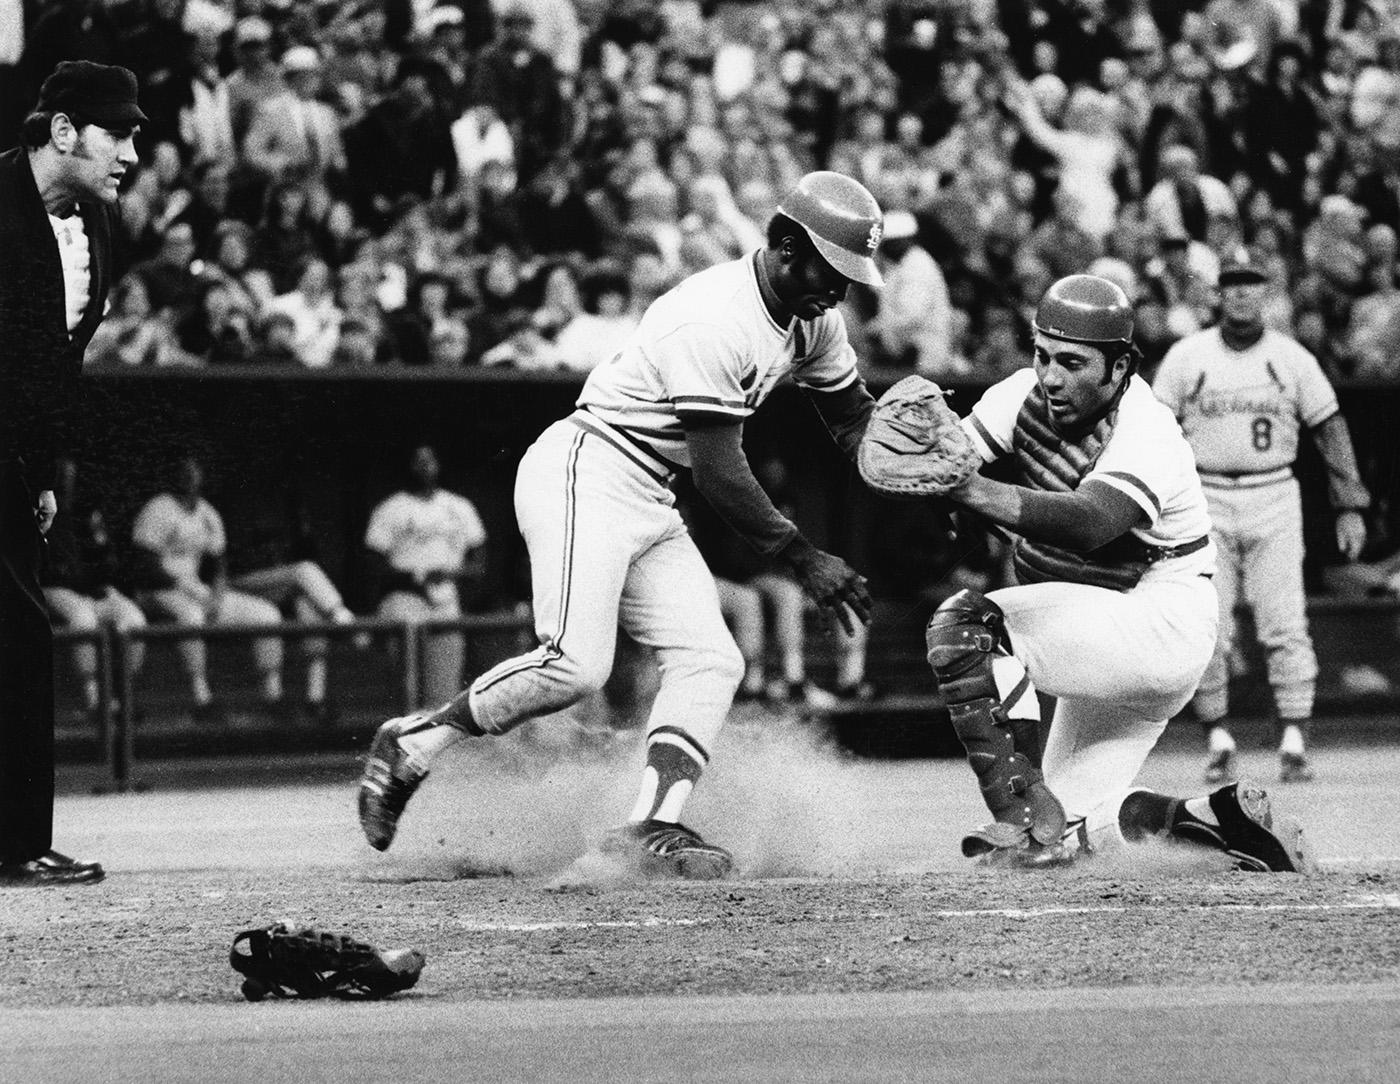 Two future Hall of Famers square off against each other, as Lou Brock tries to sneak past Johnny Bench to steal home. (National Baseball Hall of Fame)